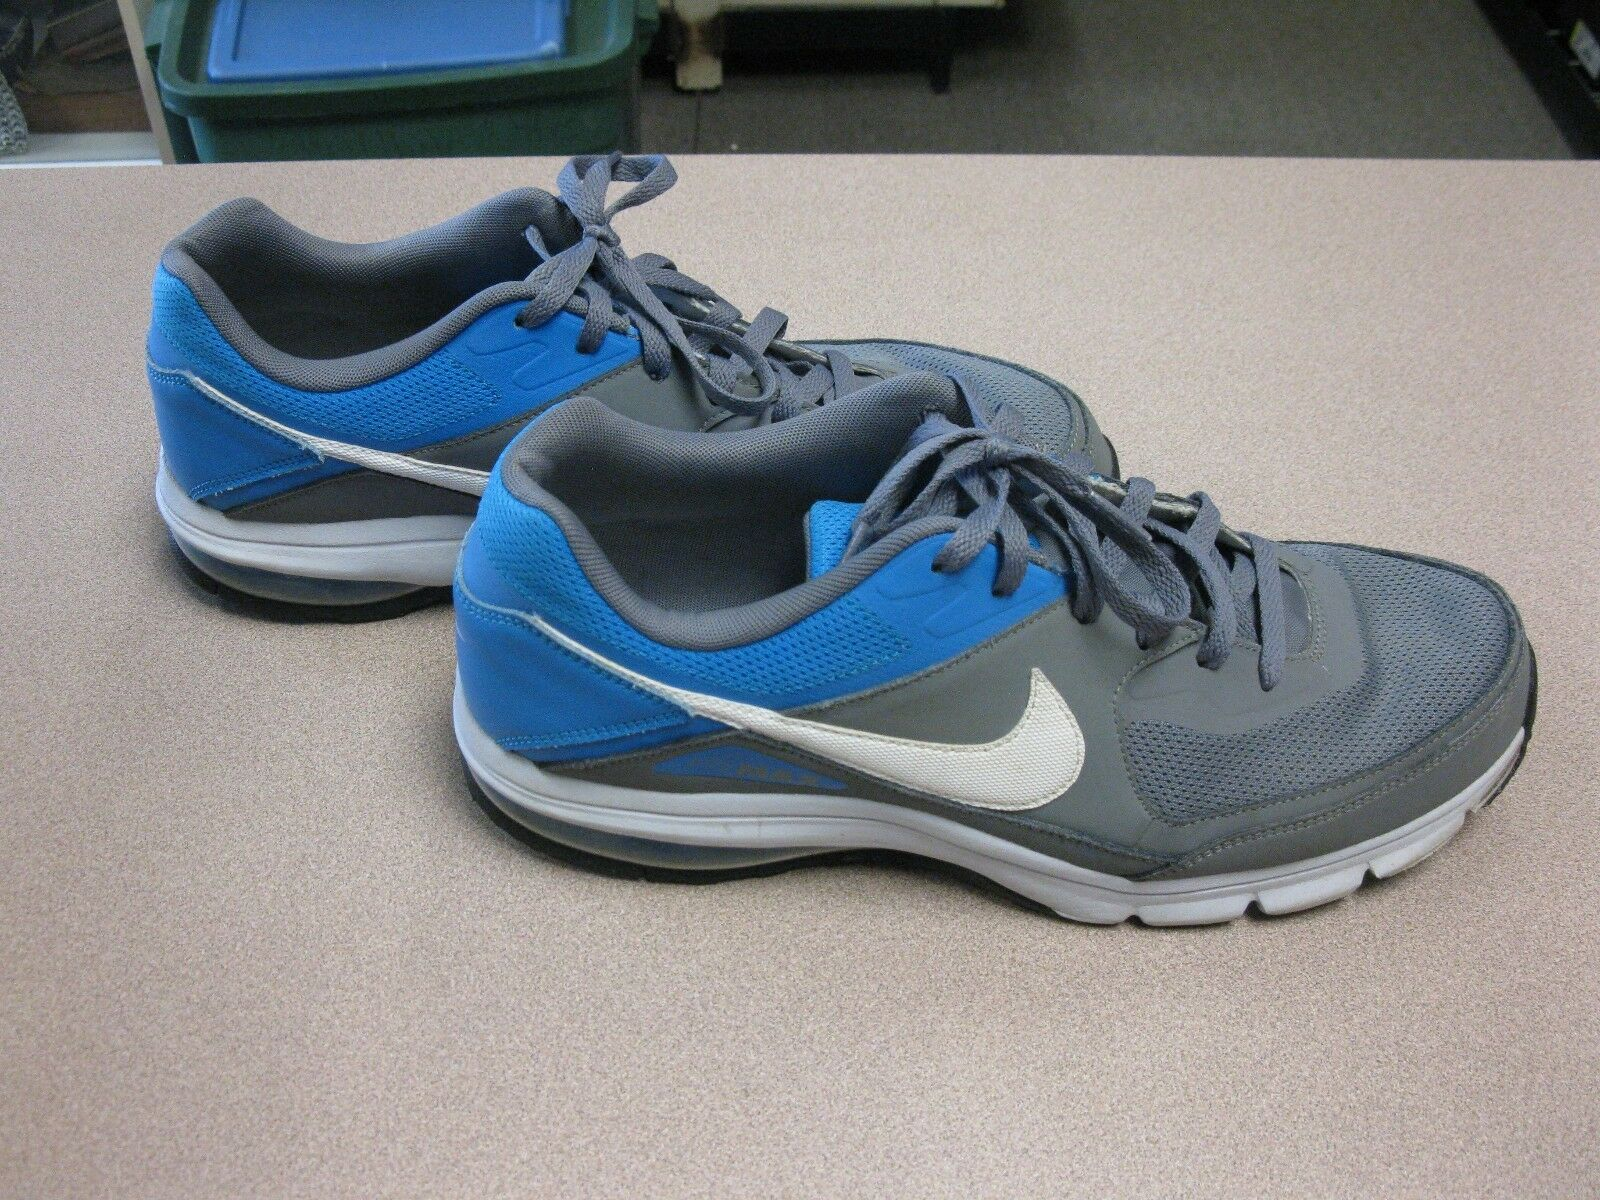 Nike Air Max size 13 blue and gray, 610639-014